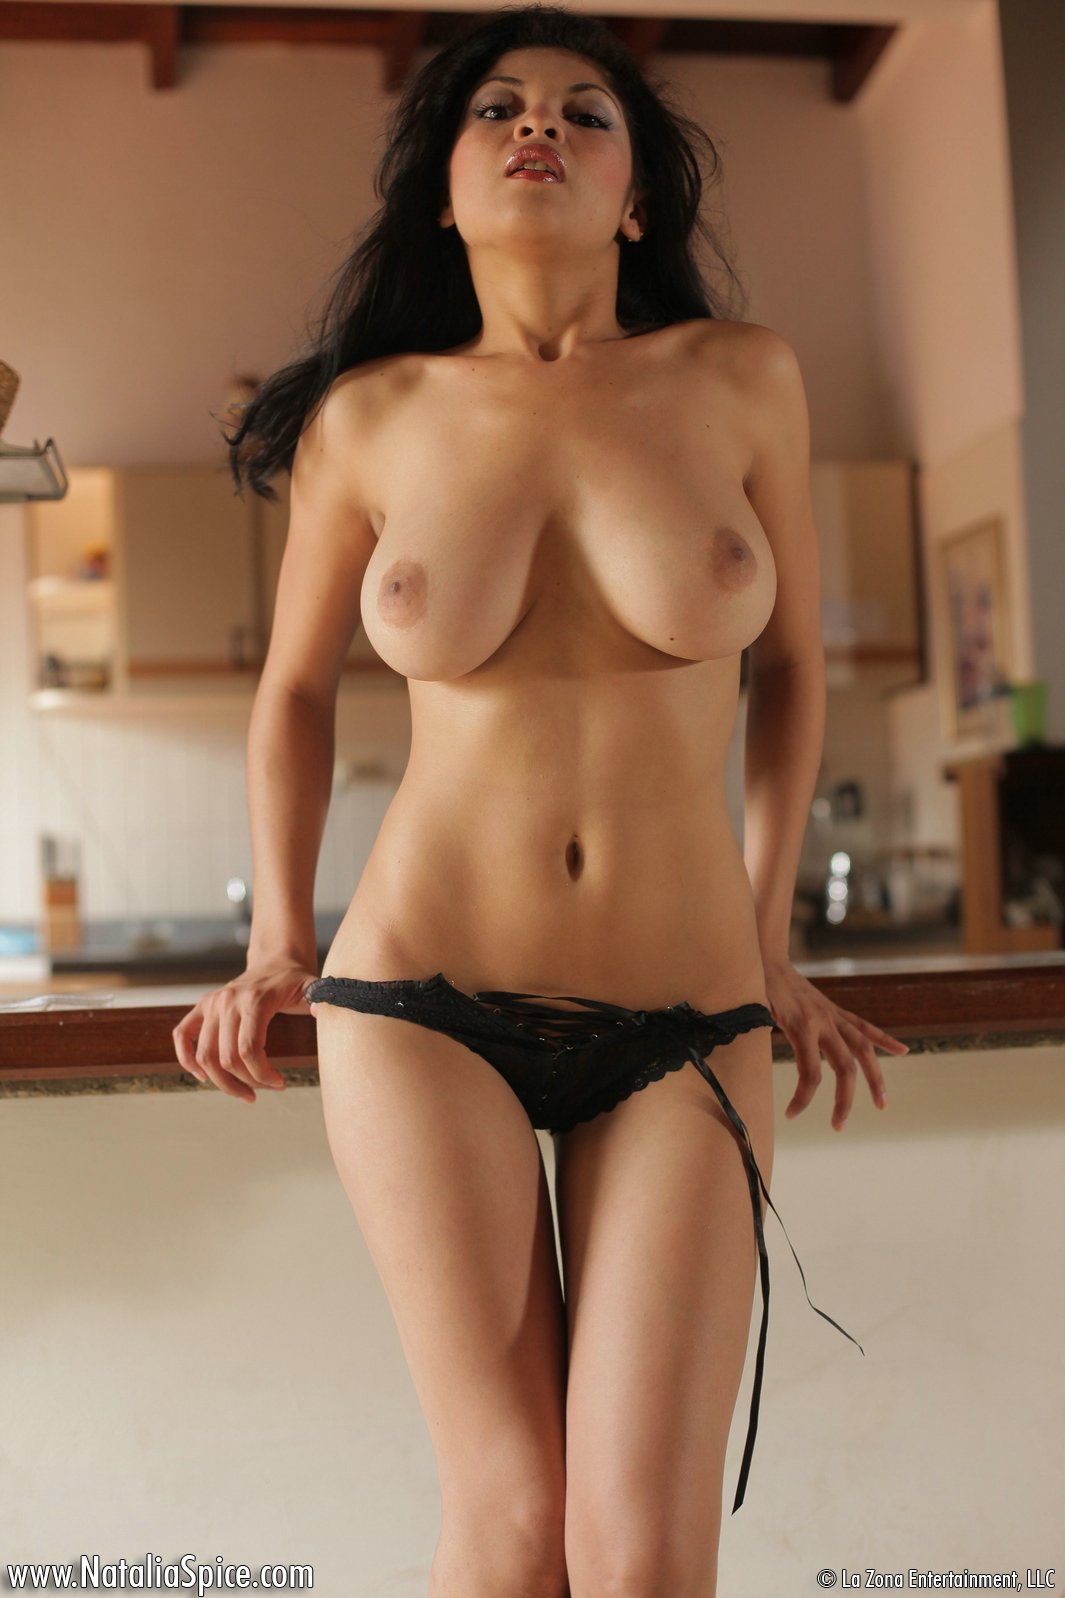 Sexy Karla Spice Naked Pictures Jpg